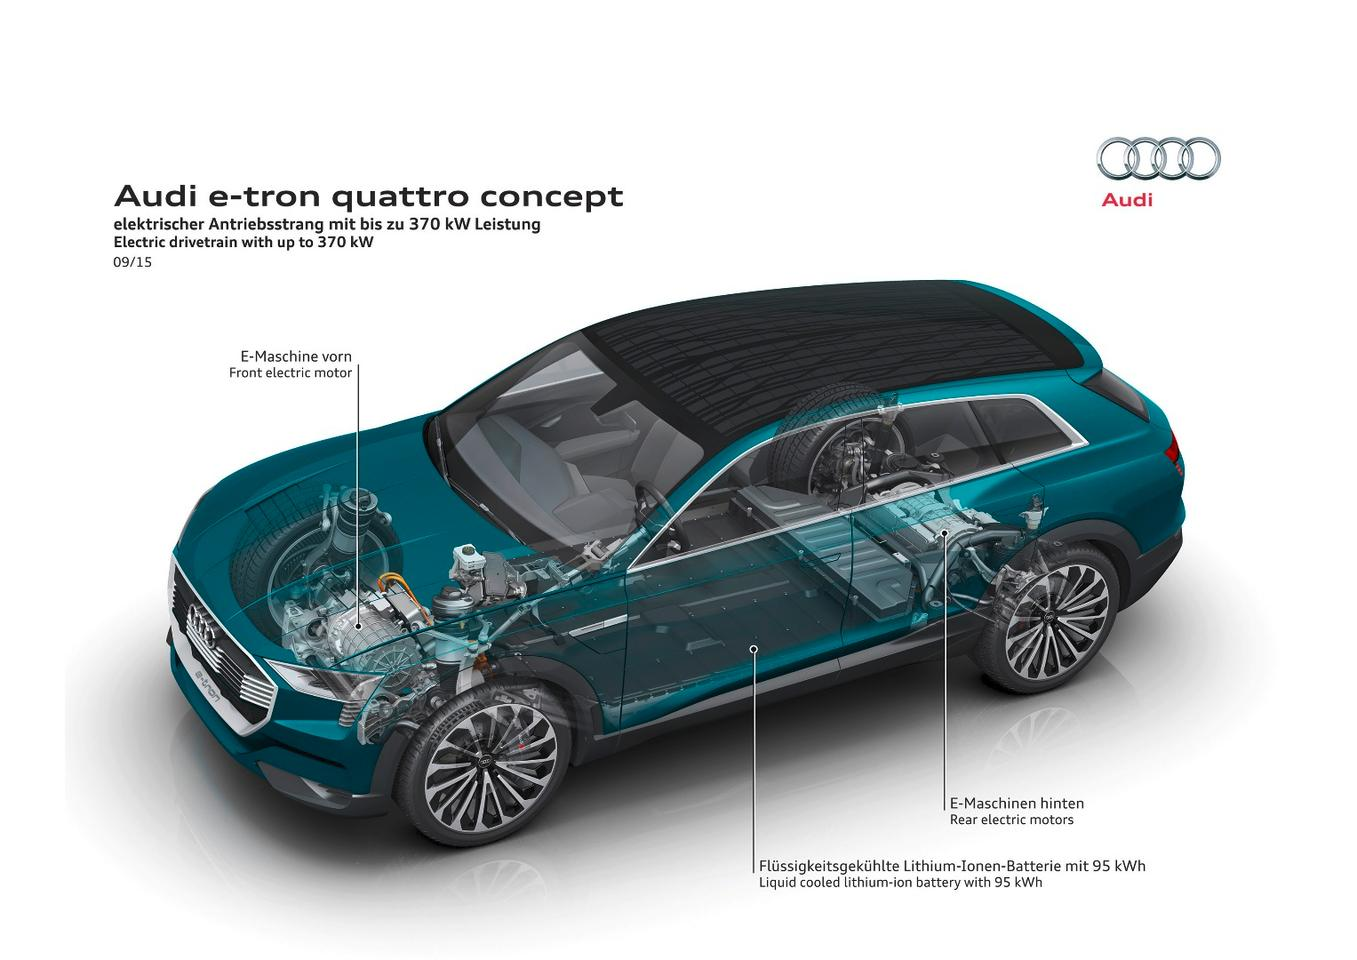 This breakdown of the Audi e-tron SUV concept shows the powertrain's general layout